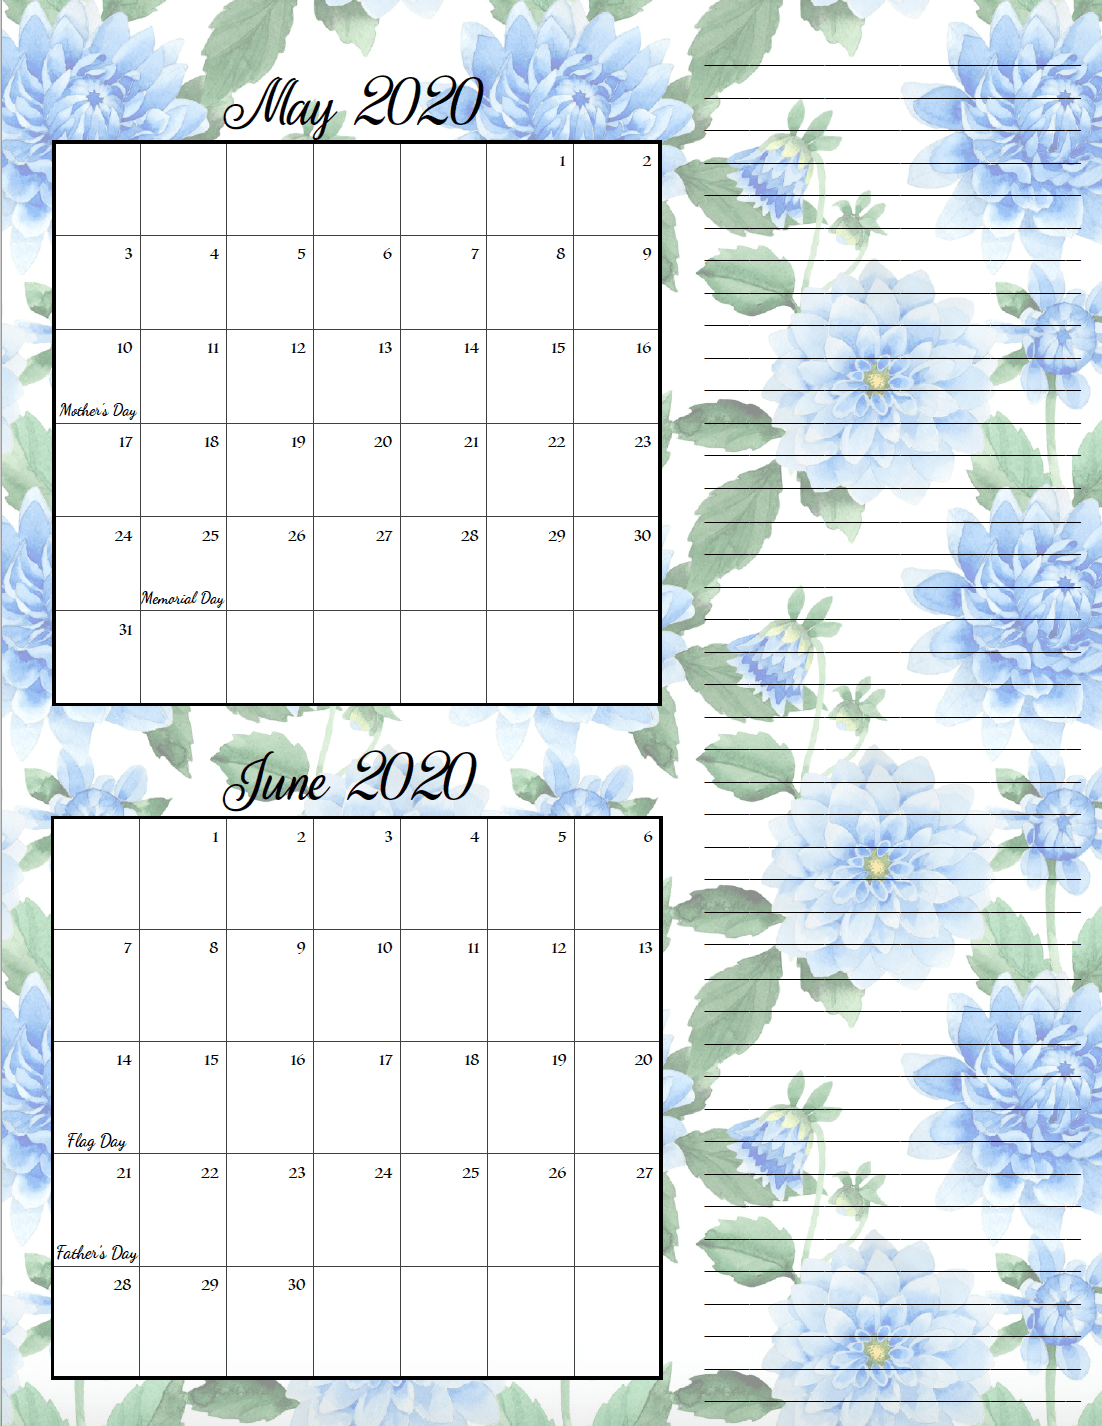 Floral theme May/June bimonthly calendar.